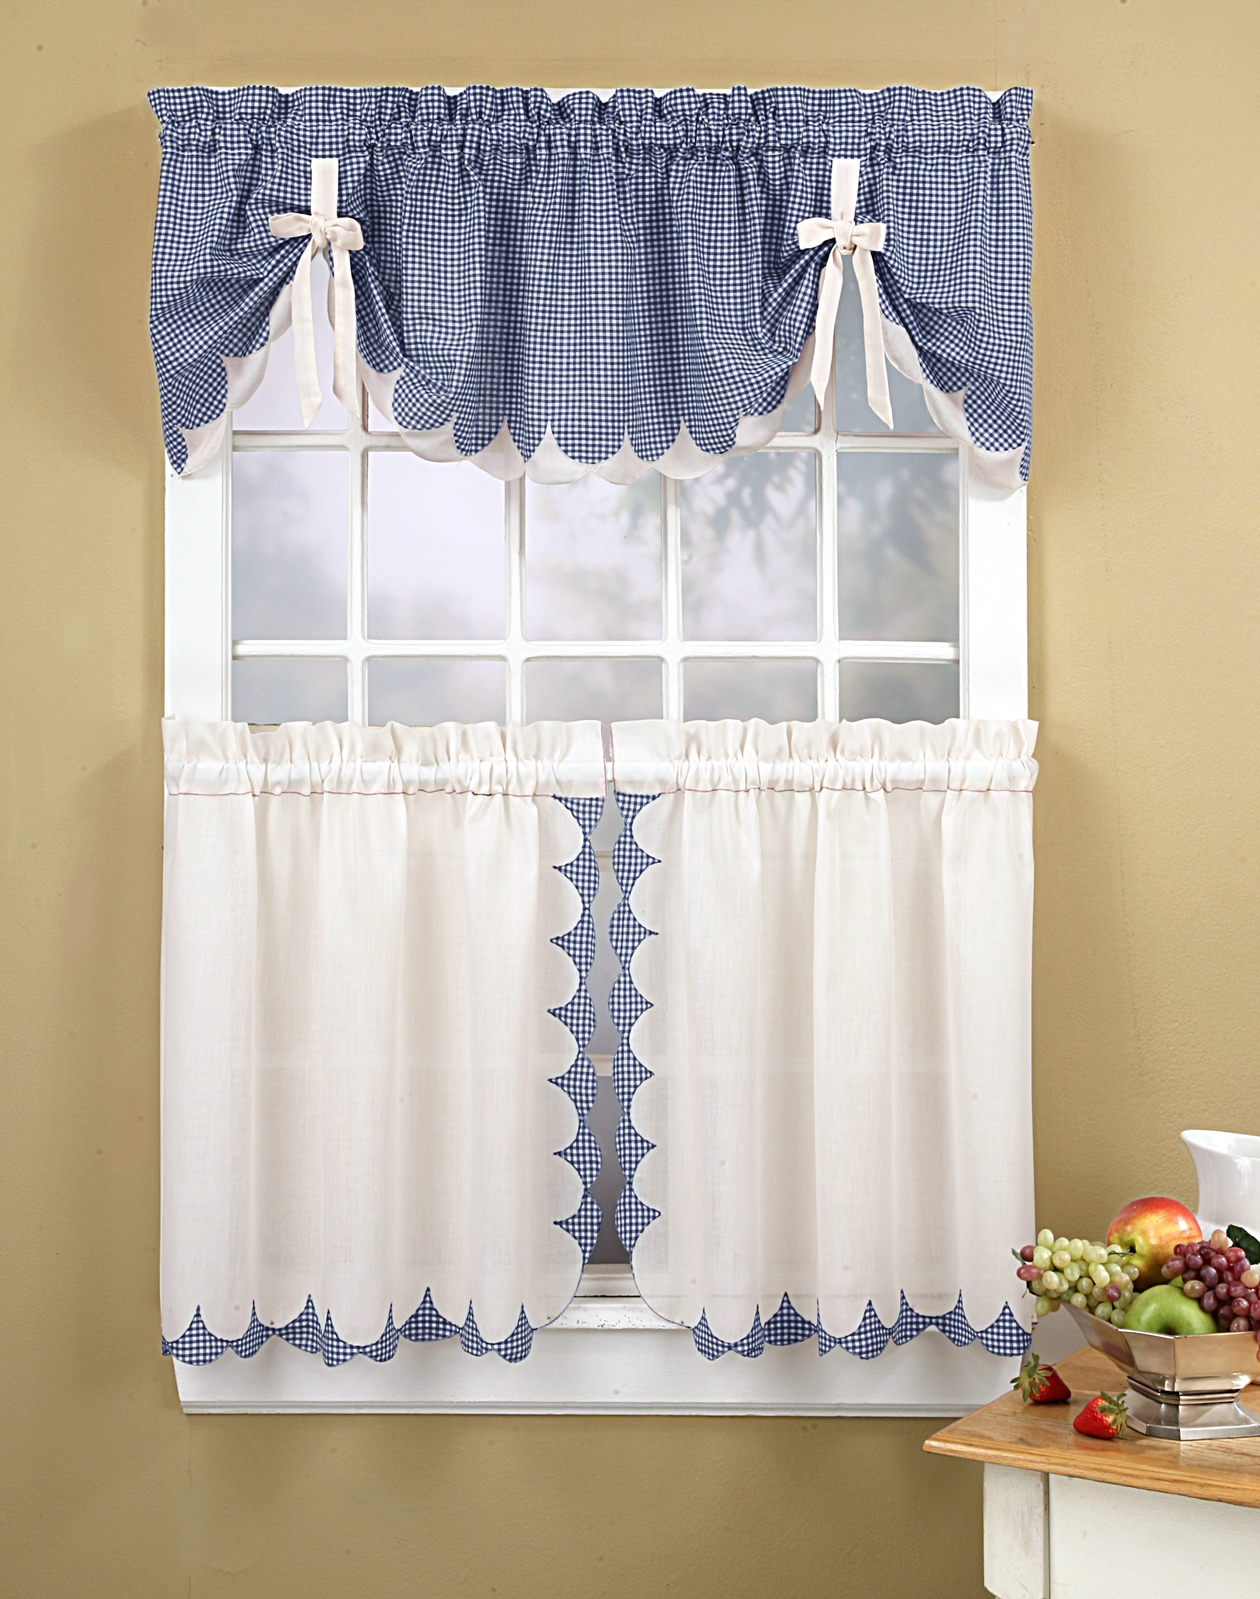 Kitchen Curtains Tabitha 3 Piece Kitchen Curtain Tier Set Inside Hand Made Curtains (View 7 of 15)